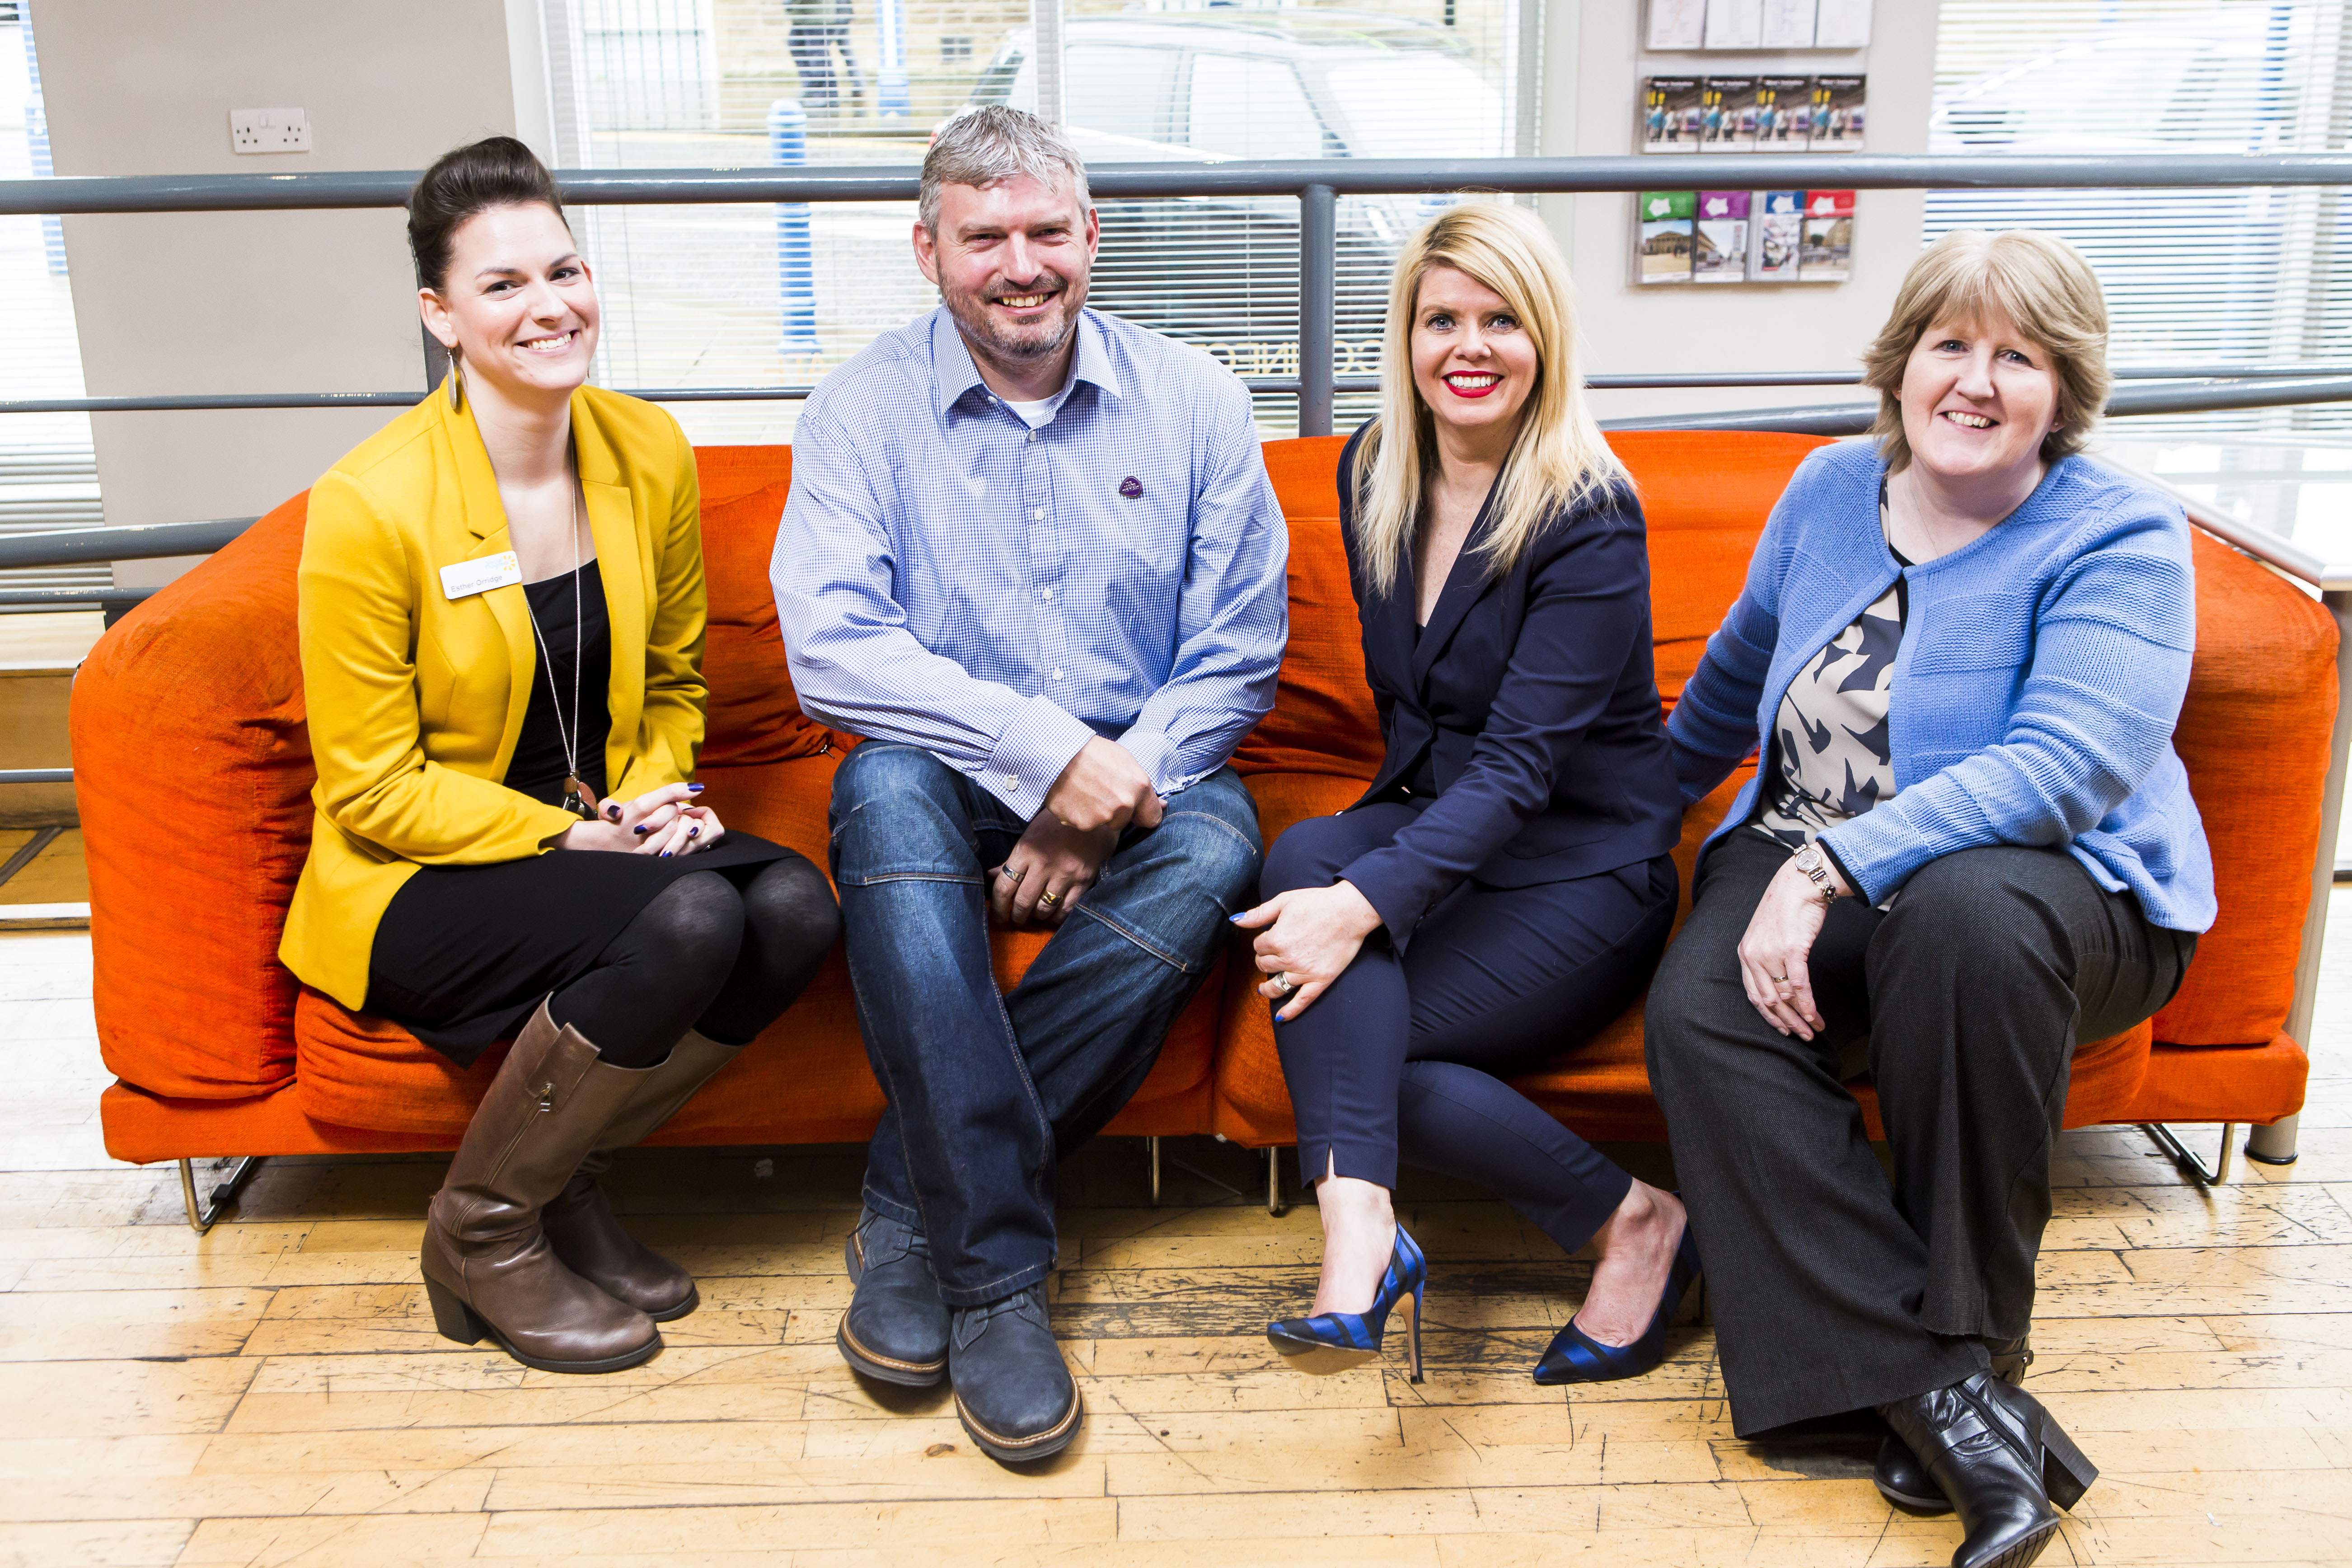 MYnetwork Partners - Photo by John Steel Photography - Social Progress Ltd, Ramsdens Solicitors and Better Telecomms - taken at Cafe Ollo, The Media Center